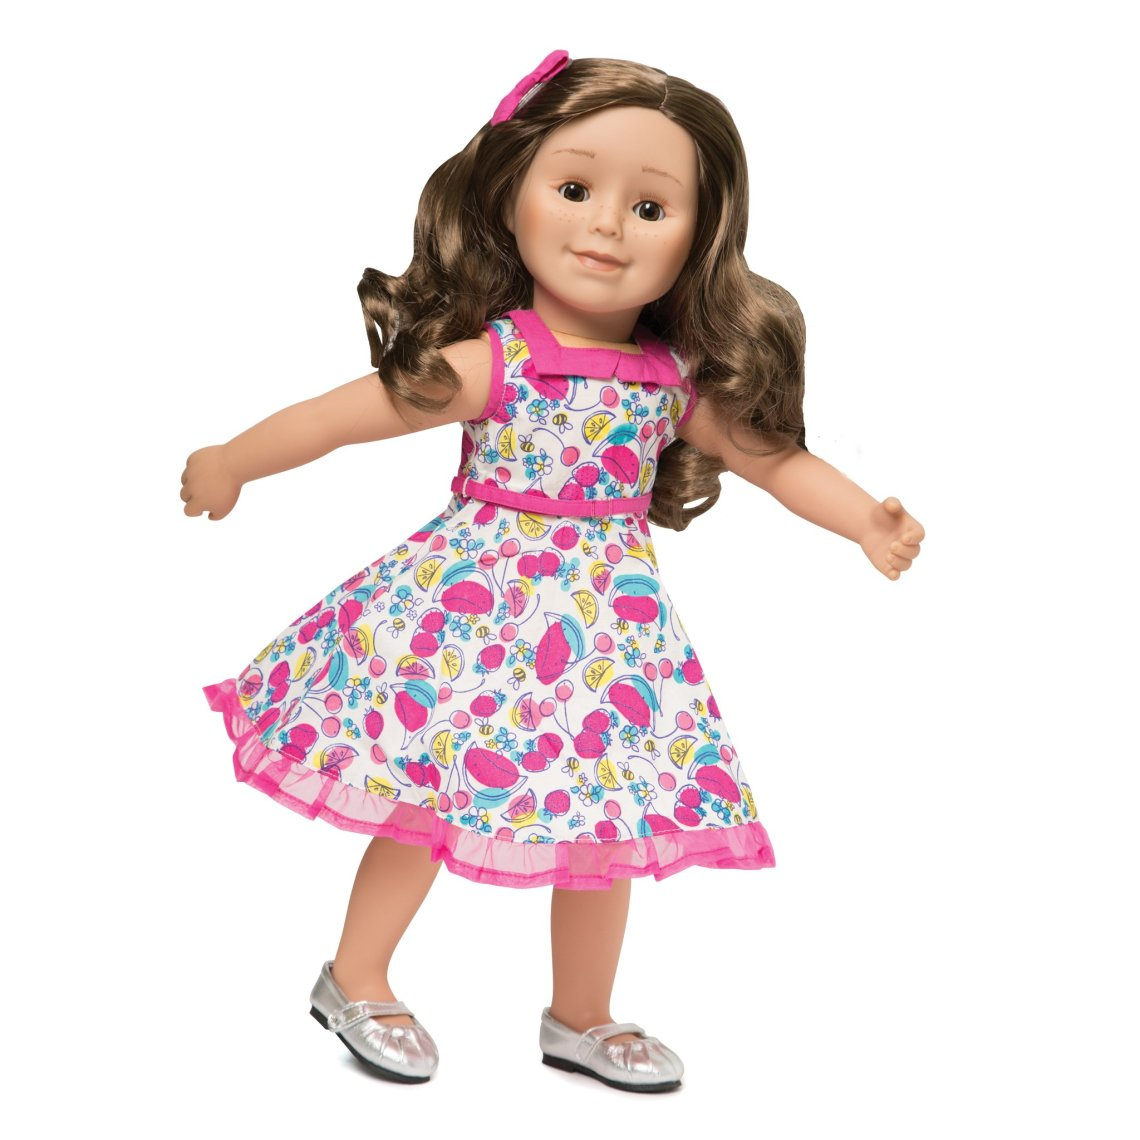 KM151_Standing_Ovation_white_50s_inspired_dress_with_multi-coloured_fruit_print_and_Pink_abow_hairclip_for_all_maplelea_dolls